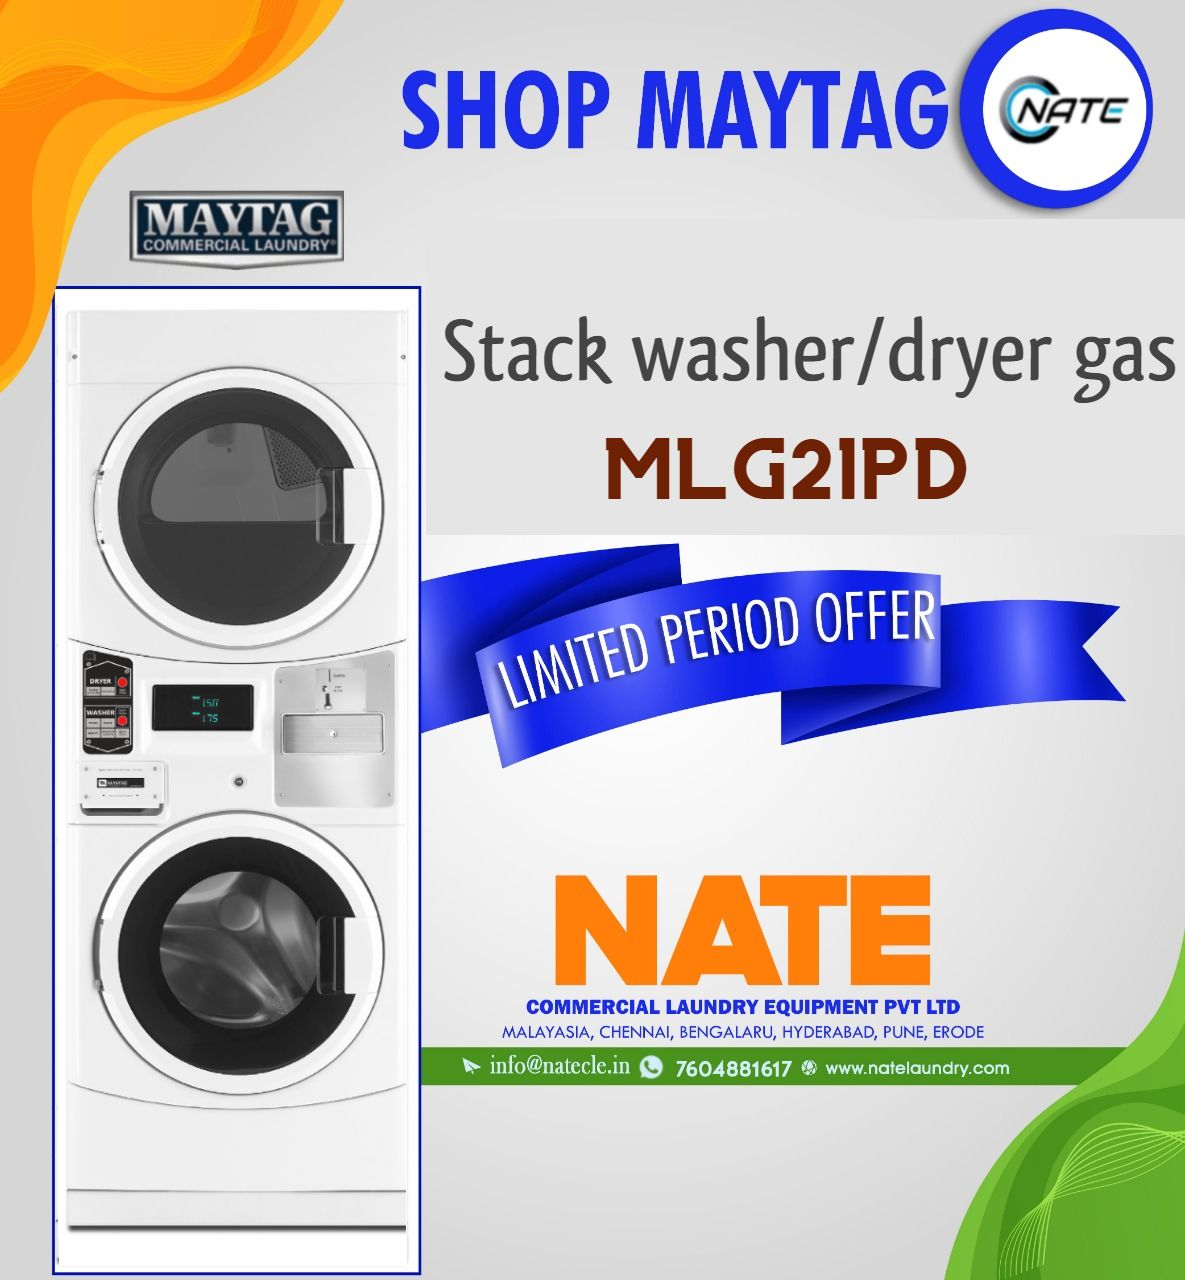 Imported Laundry Stack Washer And Dryer Gas From The